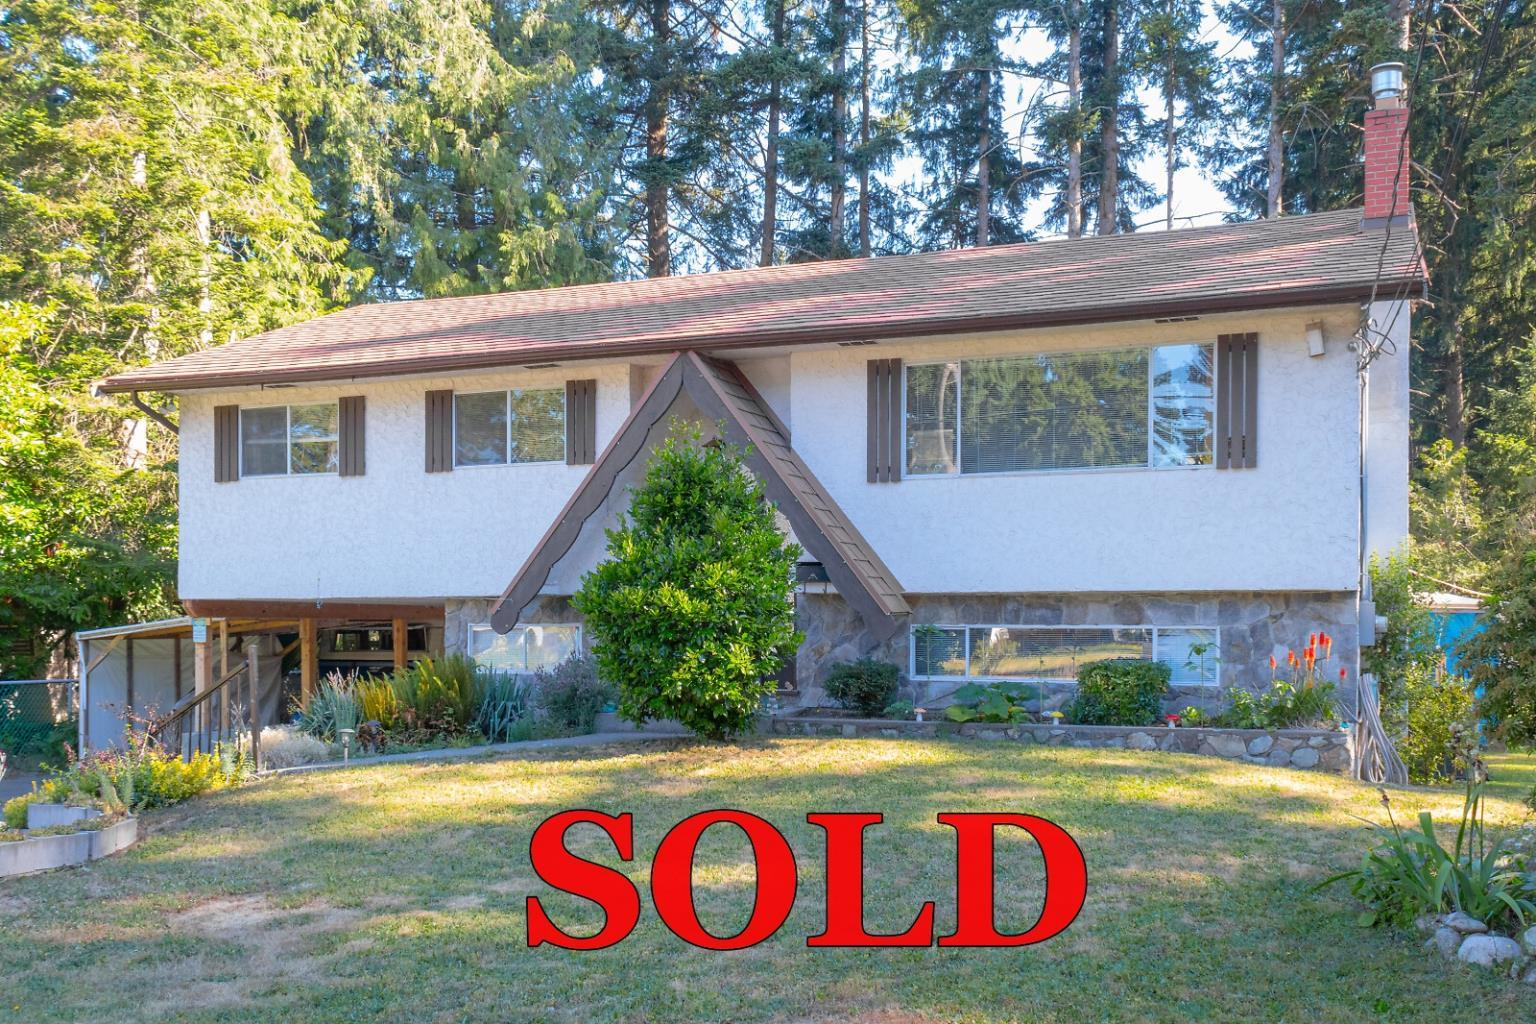 Sold in Colwood by David Stevens, Royal LePage, Victoria, BC